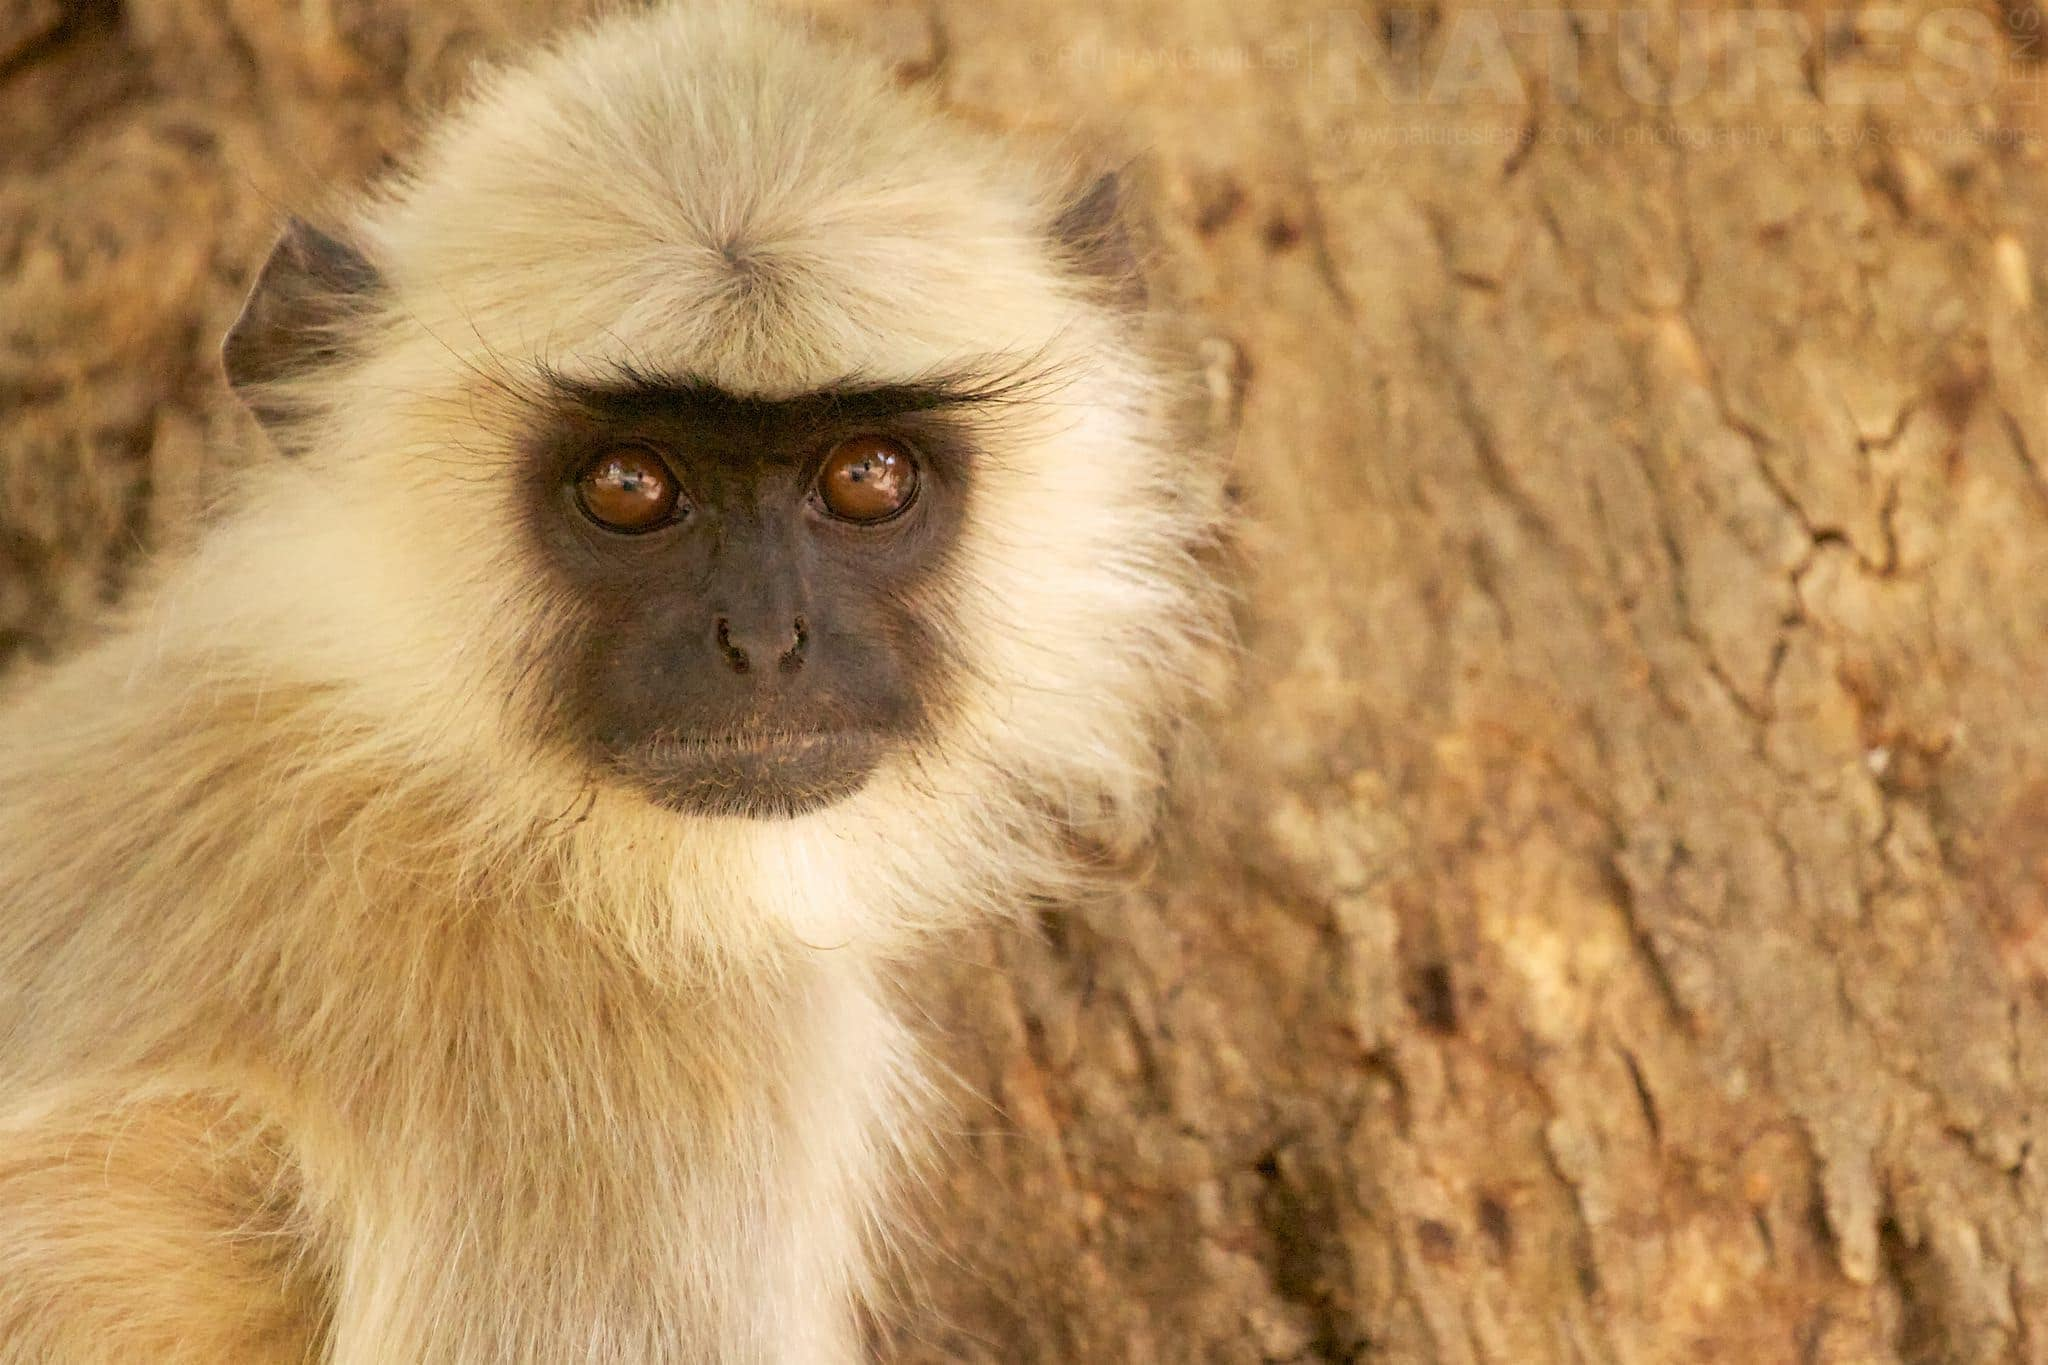 Langur Monkey   Photographed During The Tigers Of Bandhavgarh Photography Tour Led By NaturesLens